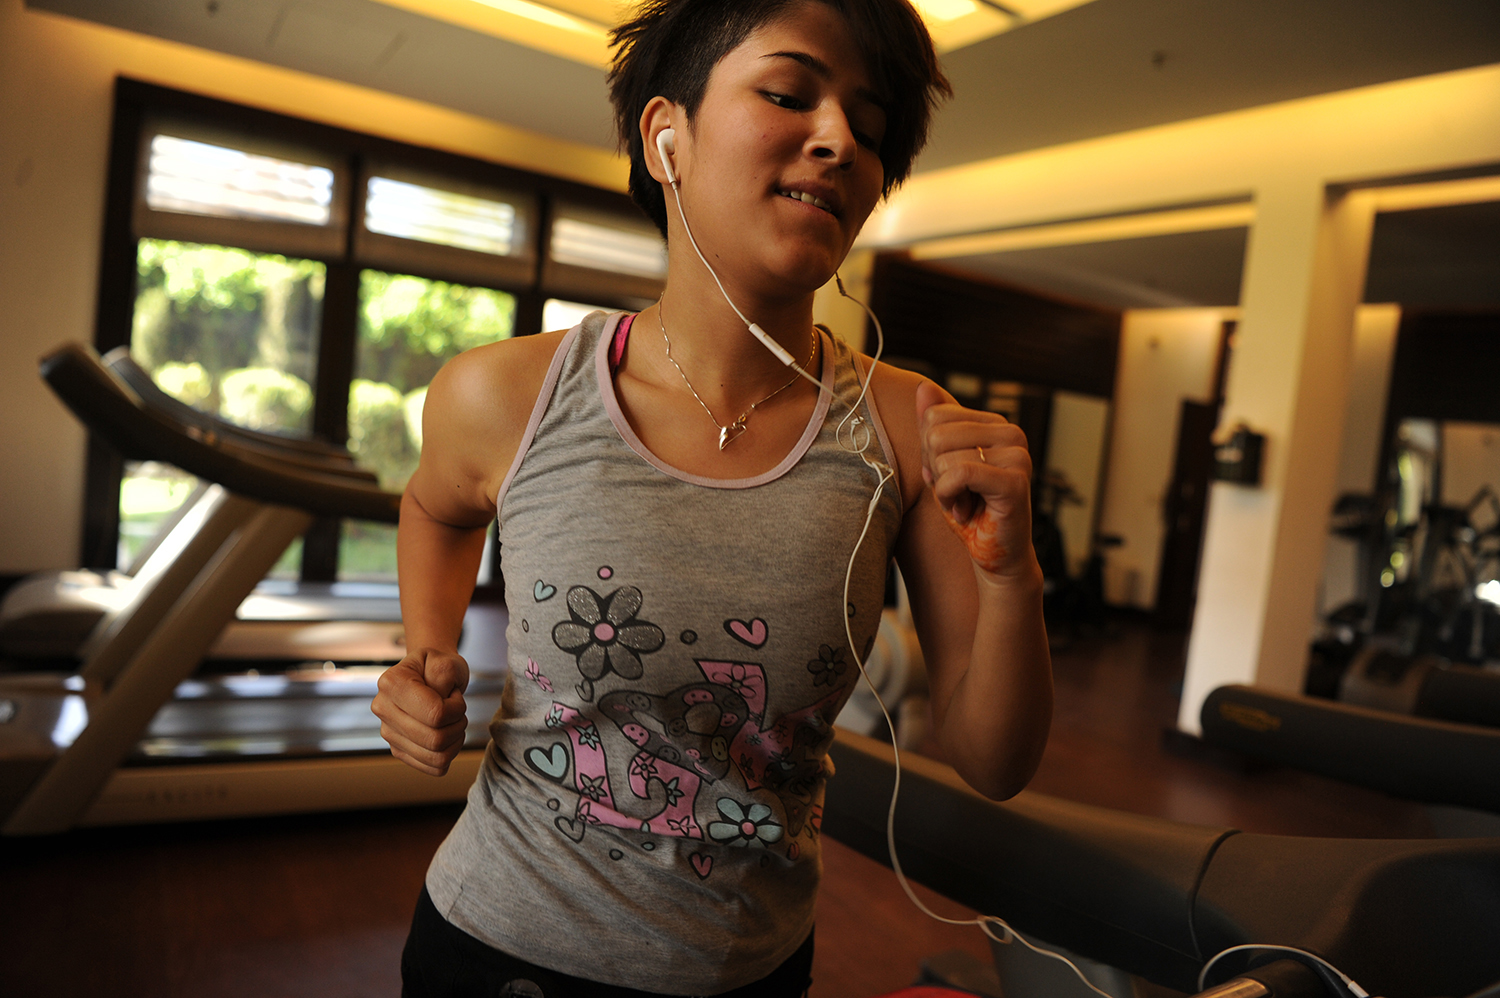 22-year-old Mubareka Sahar Fetrat exercises in a hotel gym in Kabul, Afghanistan, March 28, 2018.  Mubareka Sahar Fetrat is a feminist activist born in Afghanistan and she lived in Iran and Pakistan as a young refugee along with her family during the Taliban regime. She and her family returned to Kabul in late 2006 when she was 10 and Fetrat encountered feminist activism during her teenage years there. © Farzana Wahidy